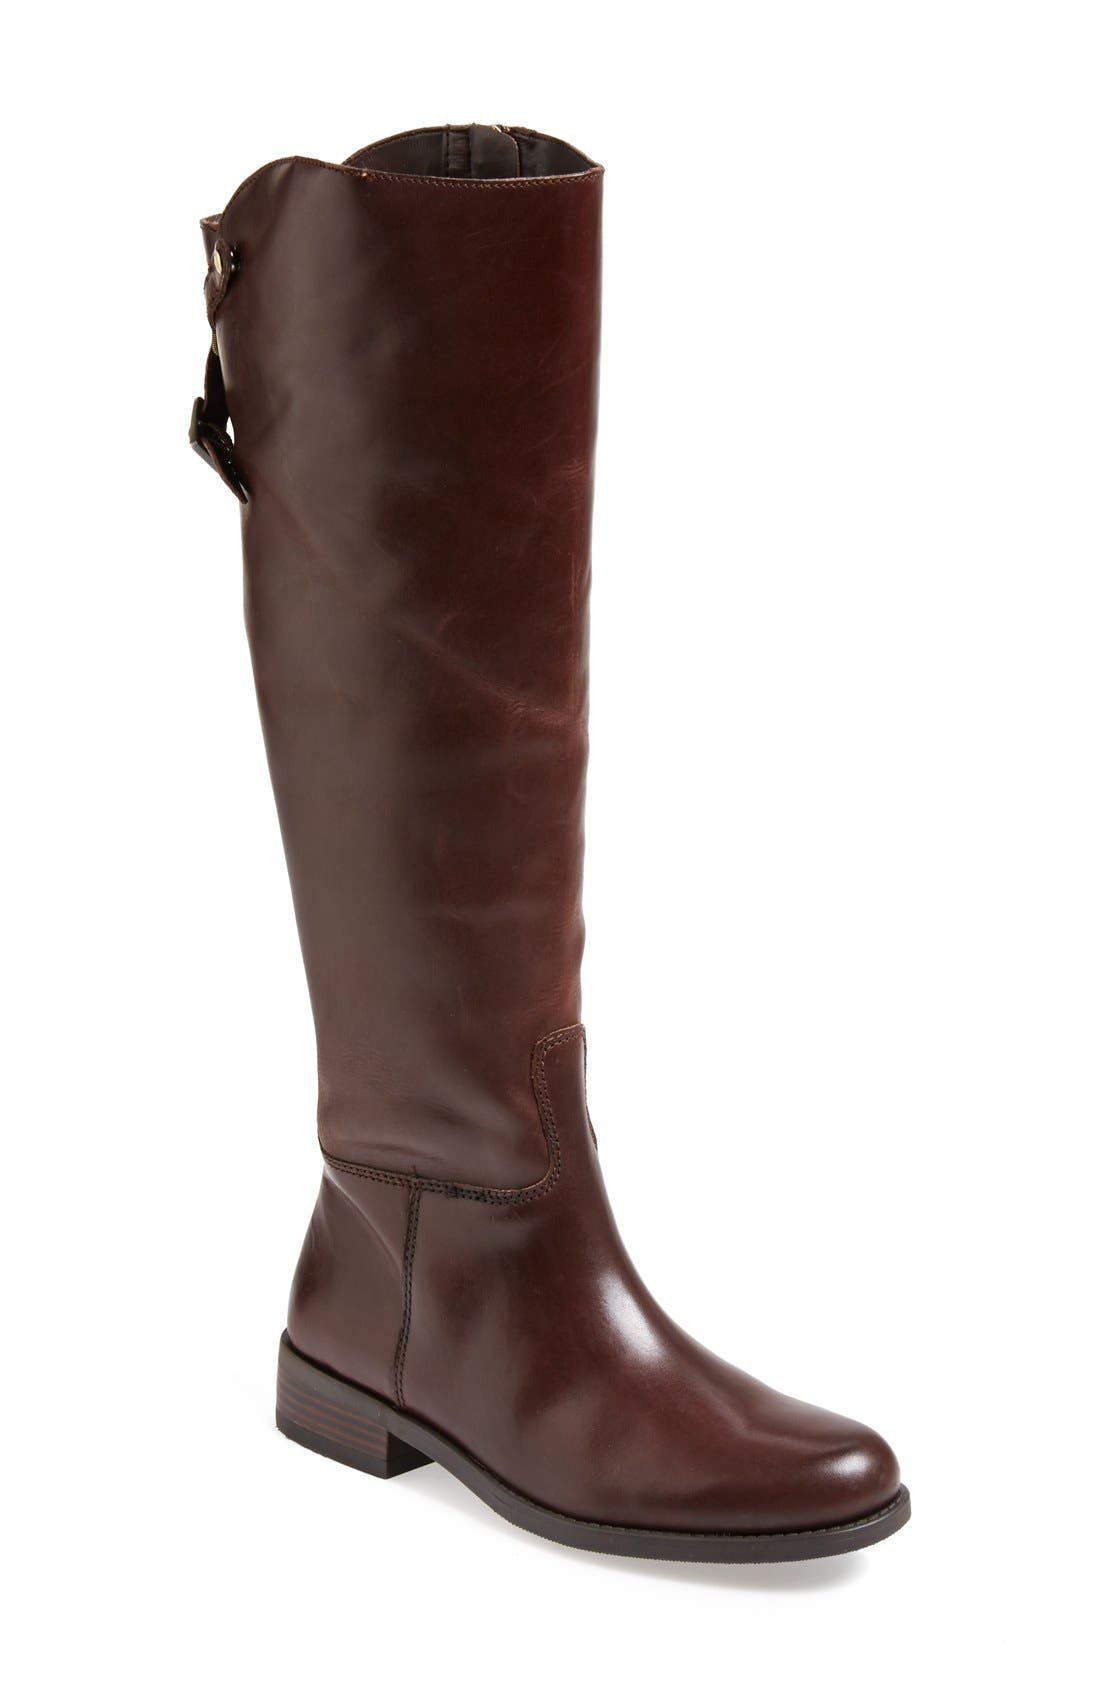 Alternate Image 1 Selected - Vince Camuto 'Kadia' Riding Boot (Women)